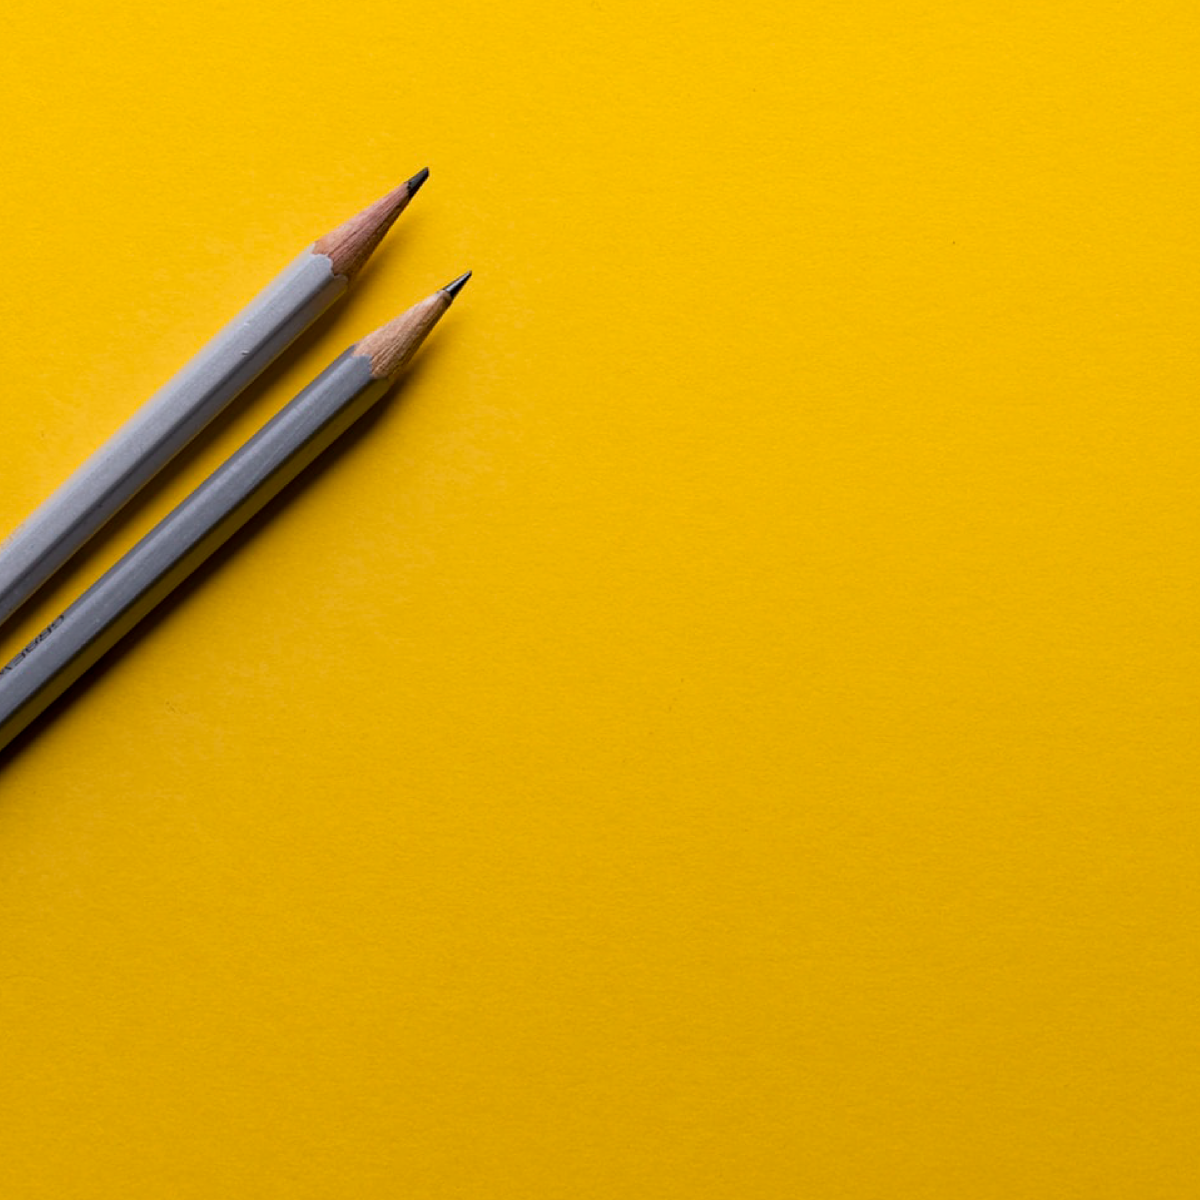 Two gray pencils for writing alt text for a website sitting on a yellow background